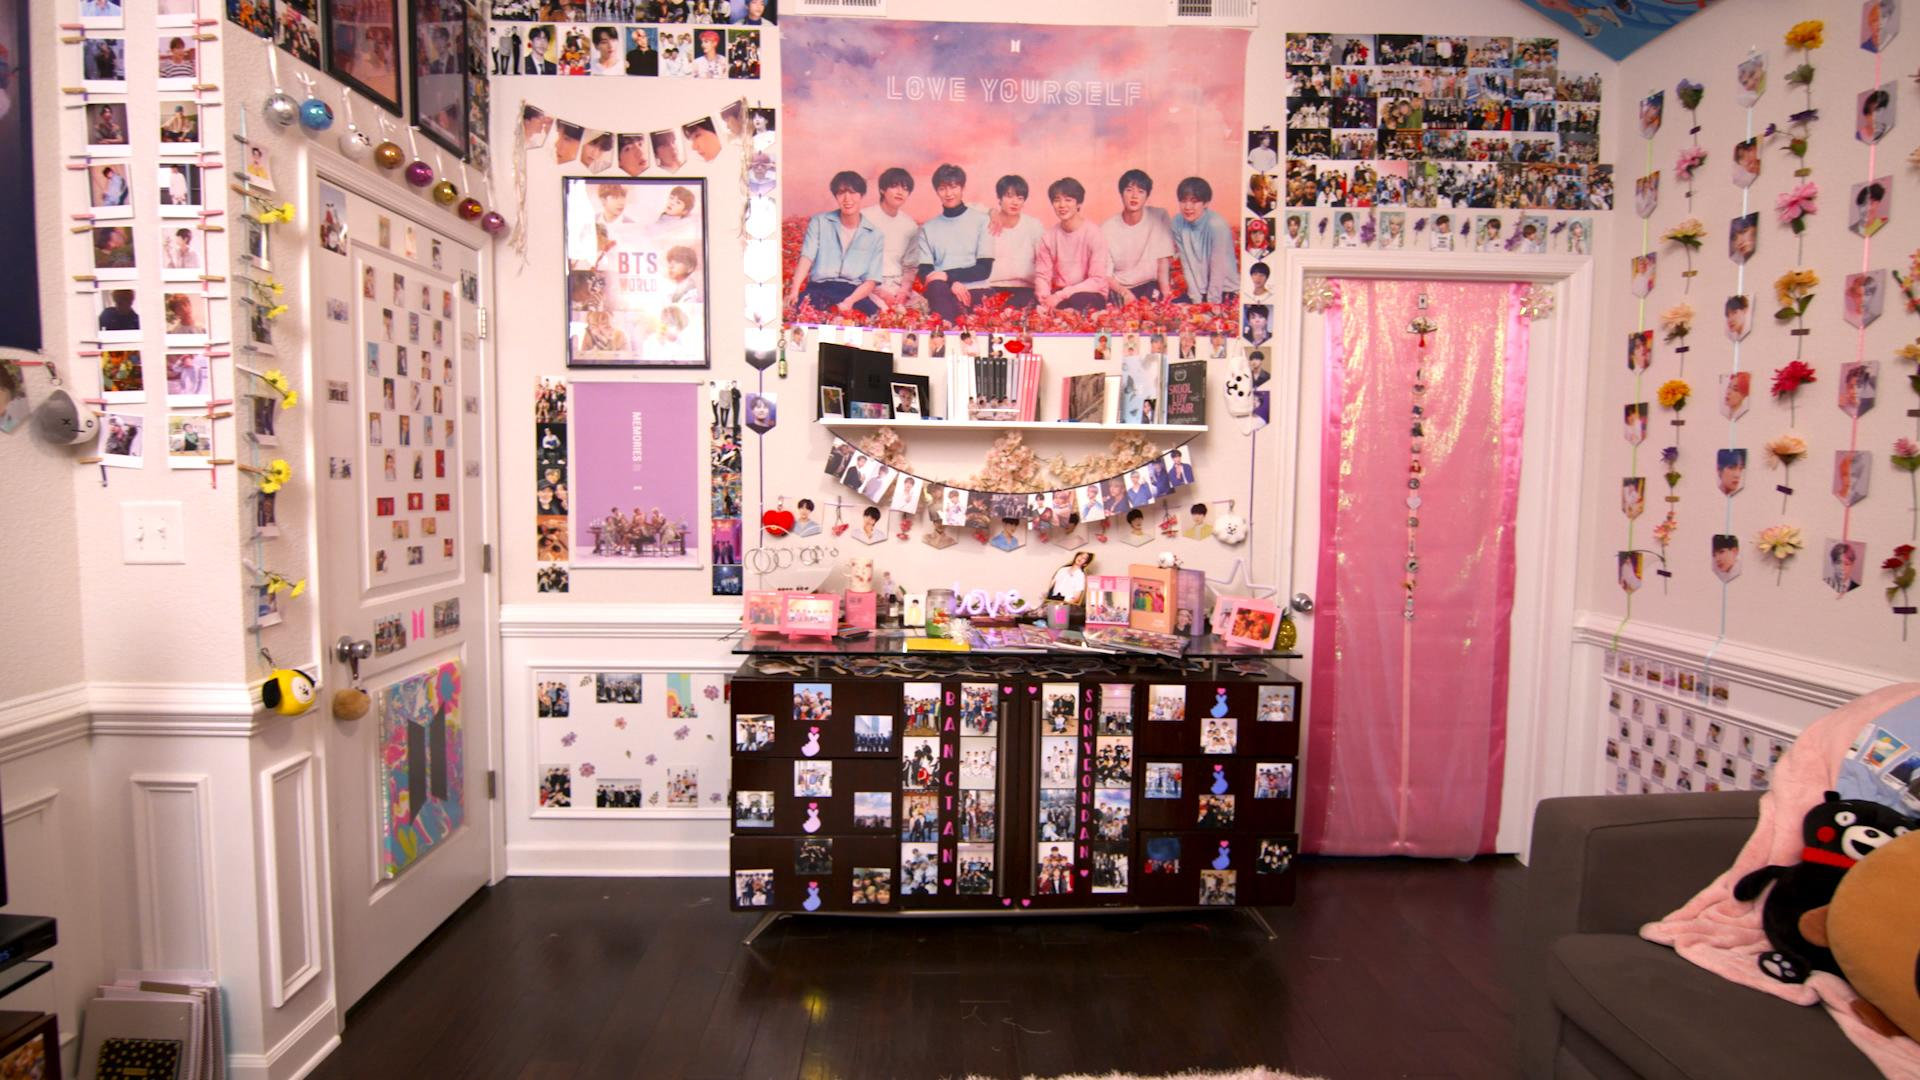 The BTS HQ room consists of hundreds of BTS photos, albums, merch, plushies, and more.